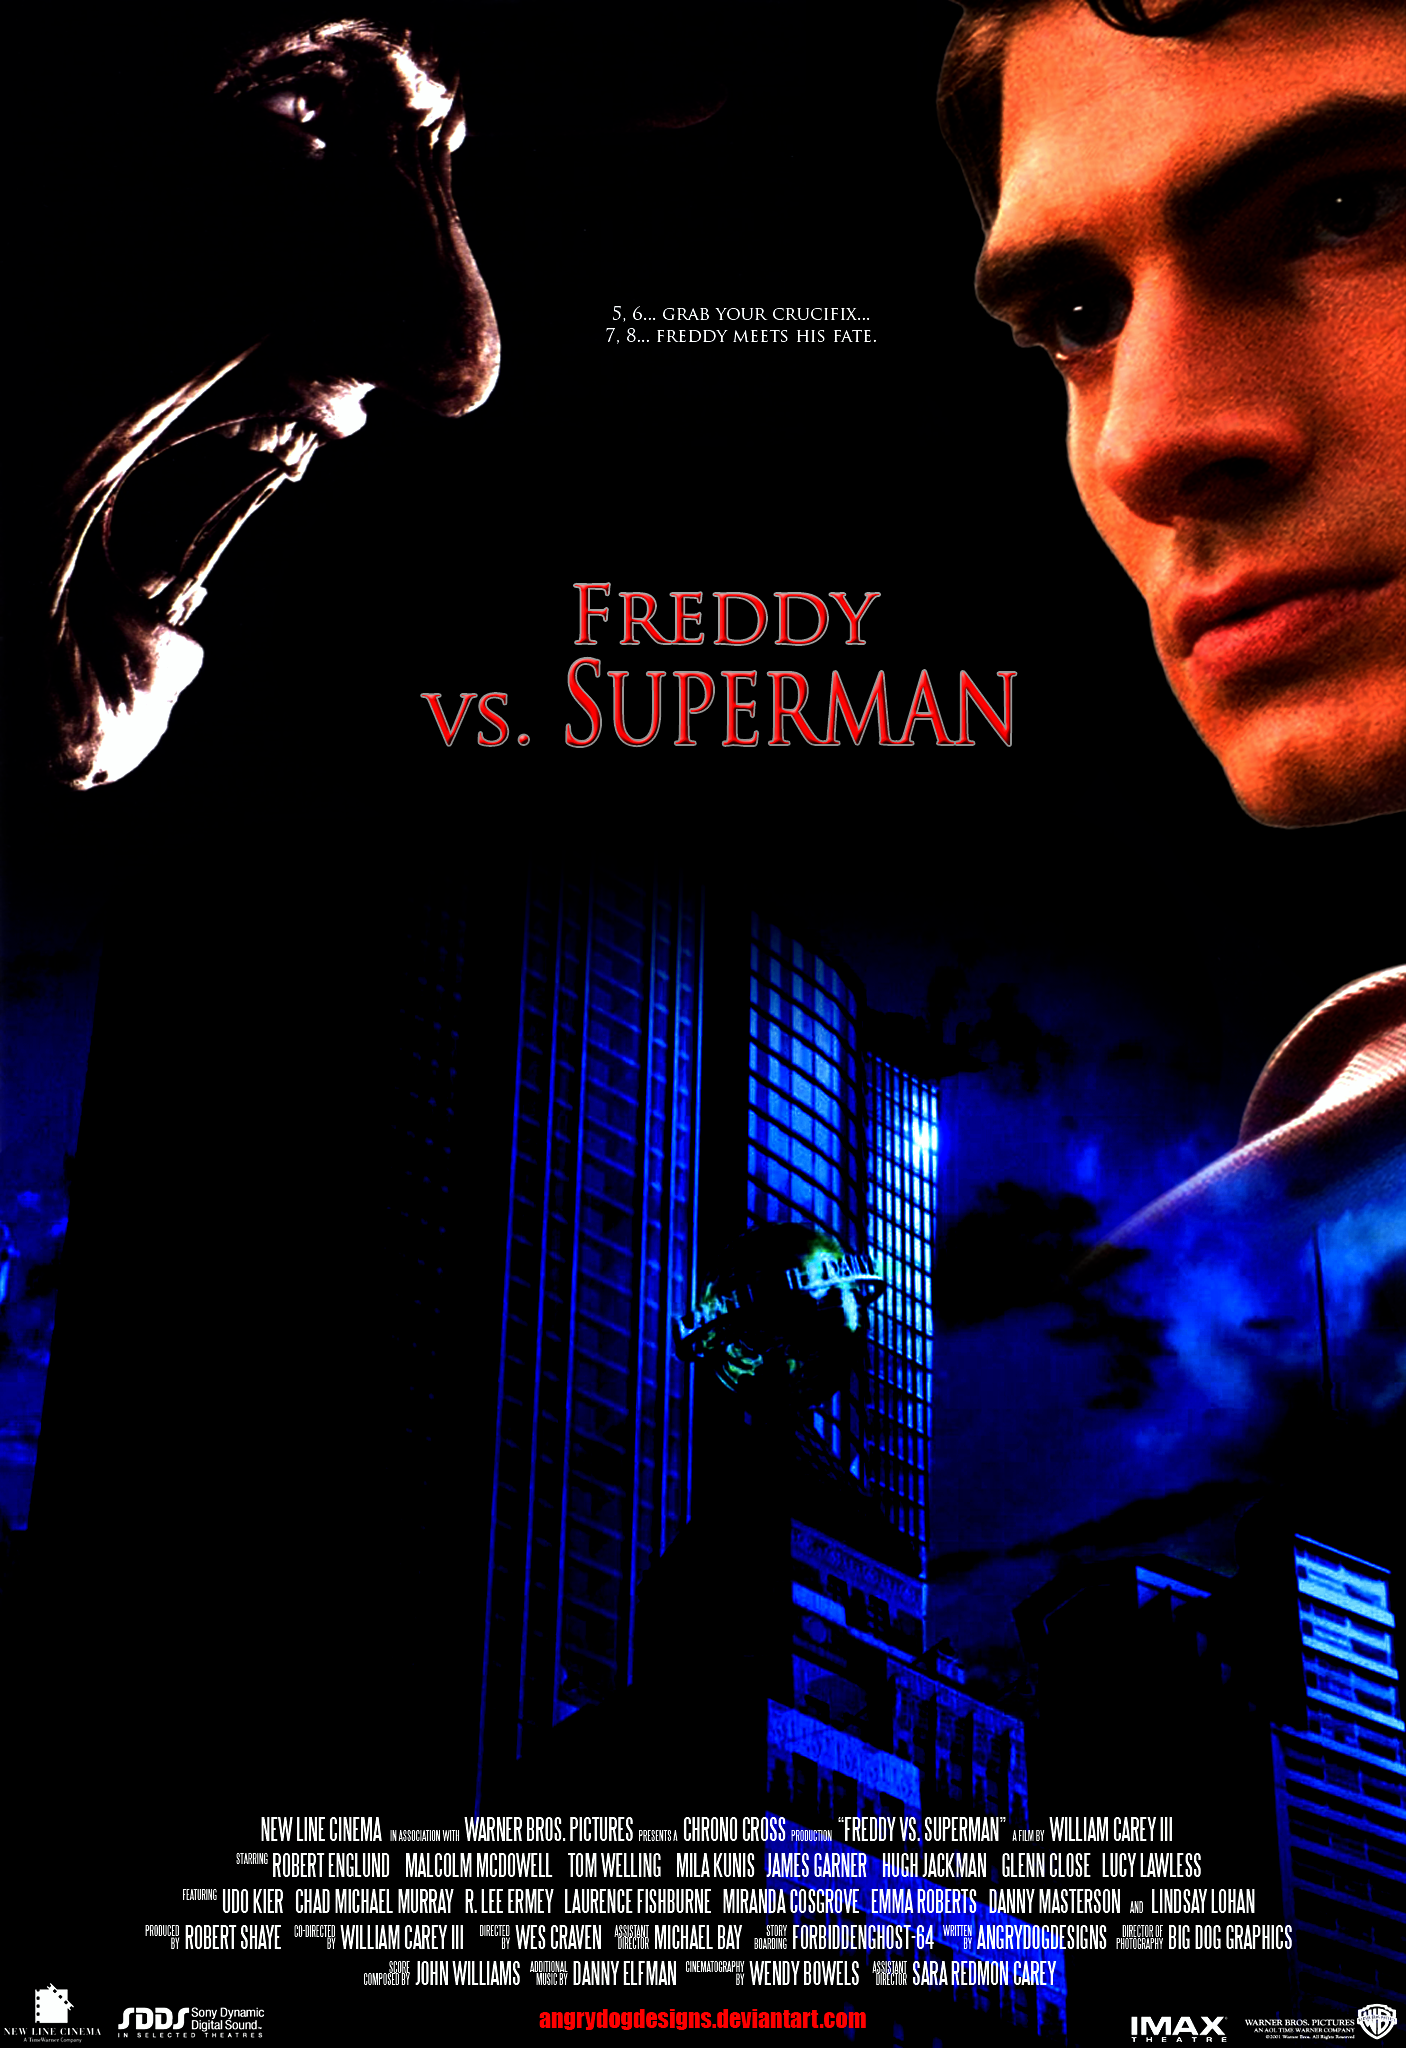 Freddy Vs. Superman Final Draft Poster by MrAngryDog